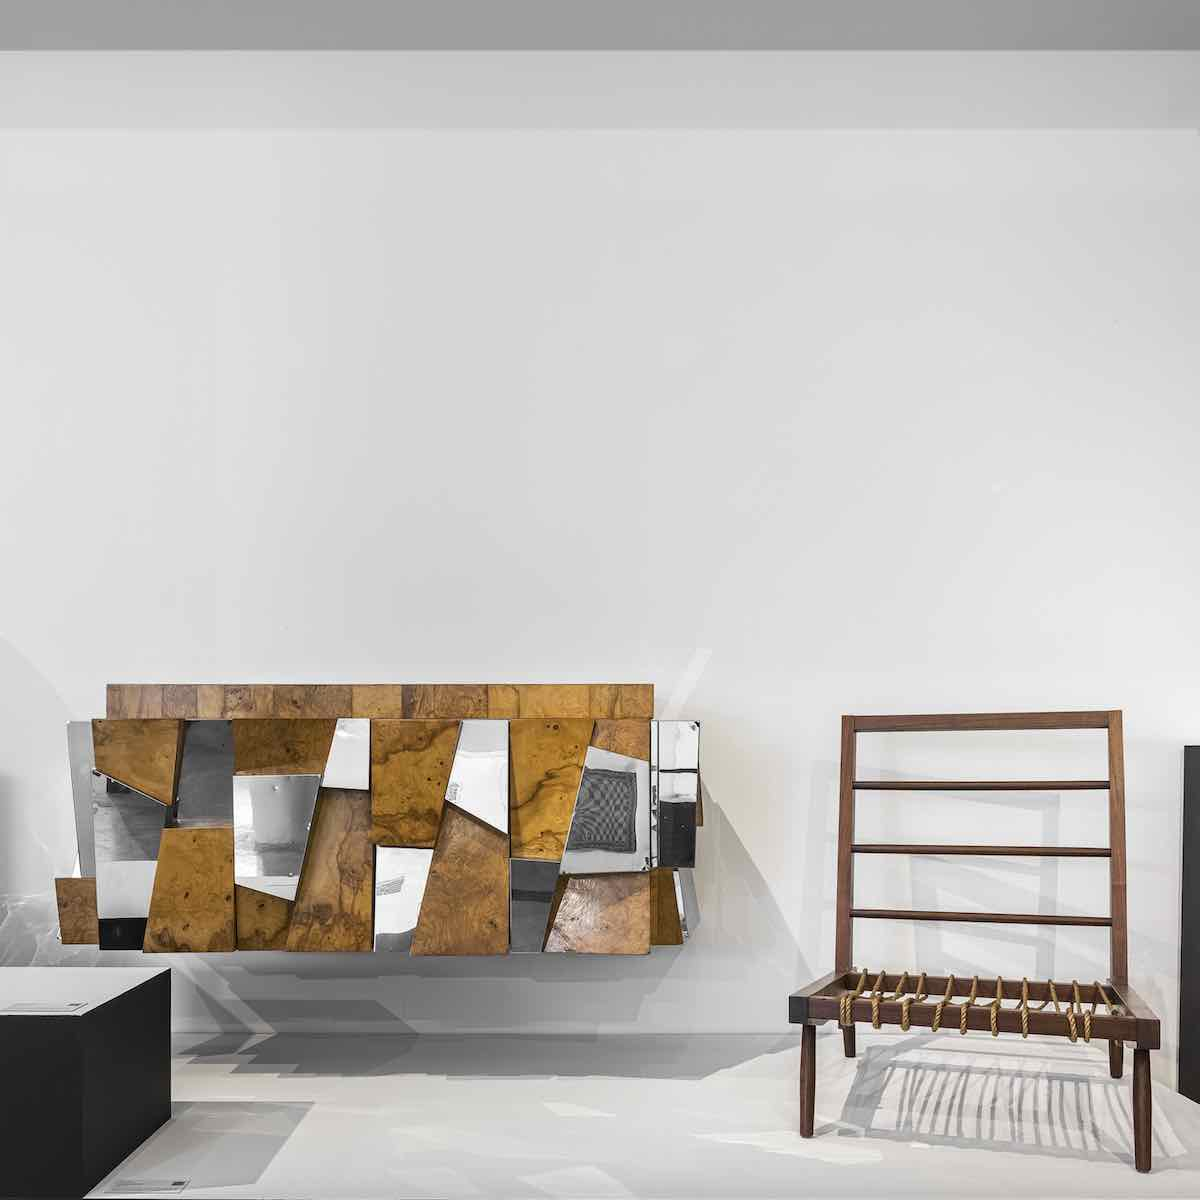 DesignMiami 2020 - from left Paul Evans 'Faceted' wall-mounted cabinet and George Nakashima Prototype Cushion Lounge Chair @ DesignMiami Podium - Photo by Kris Tamburello.